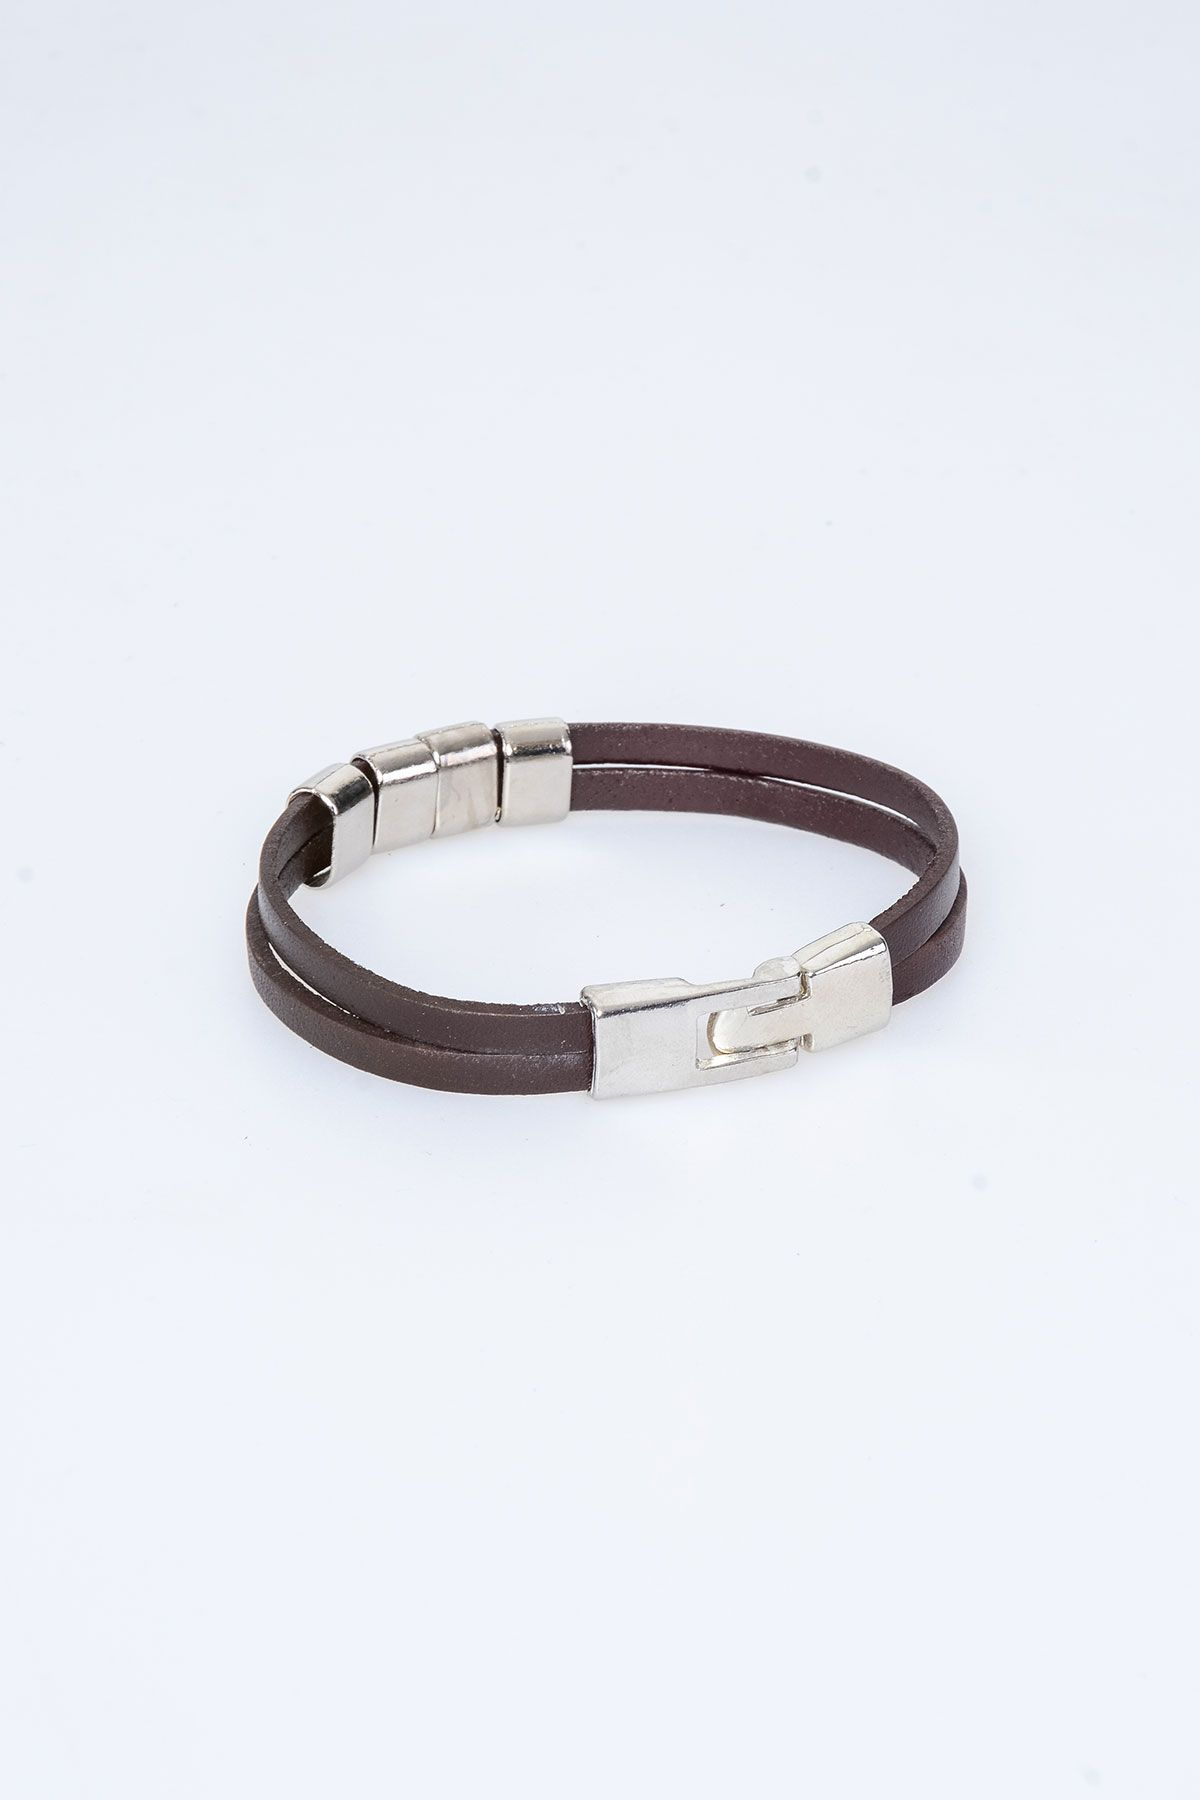 Pegia Genuine Leather Bracelet 19BL19 Brown